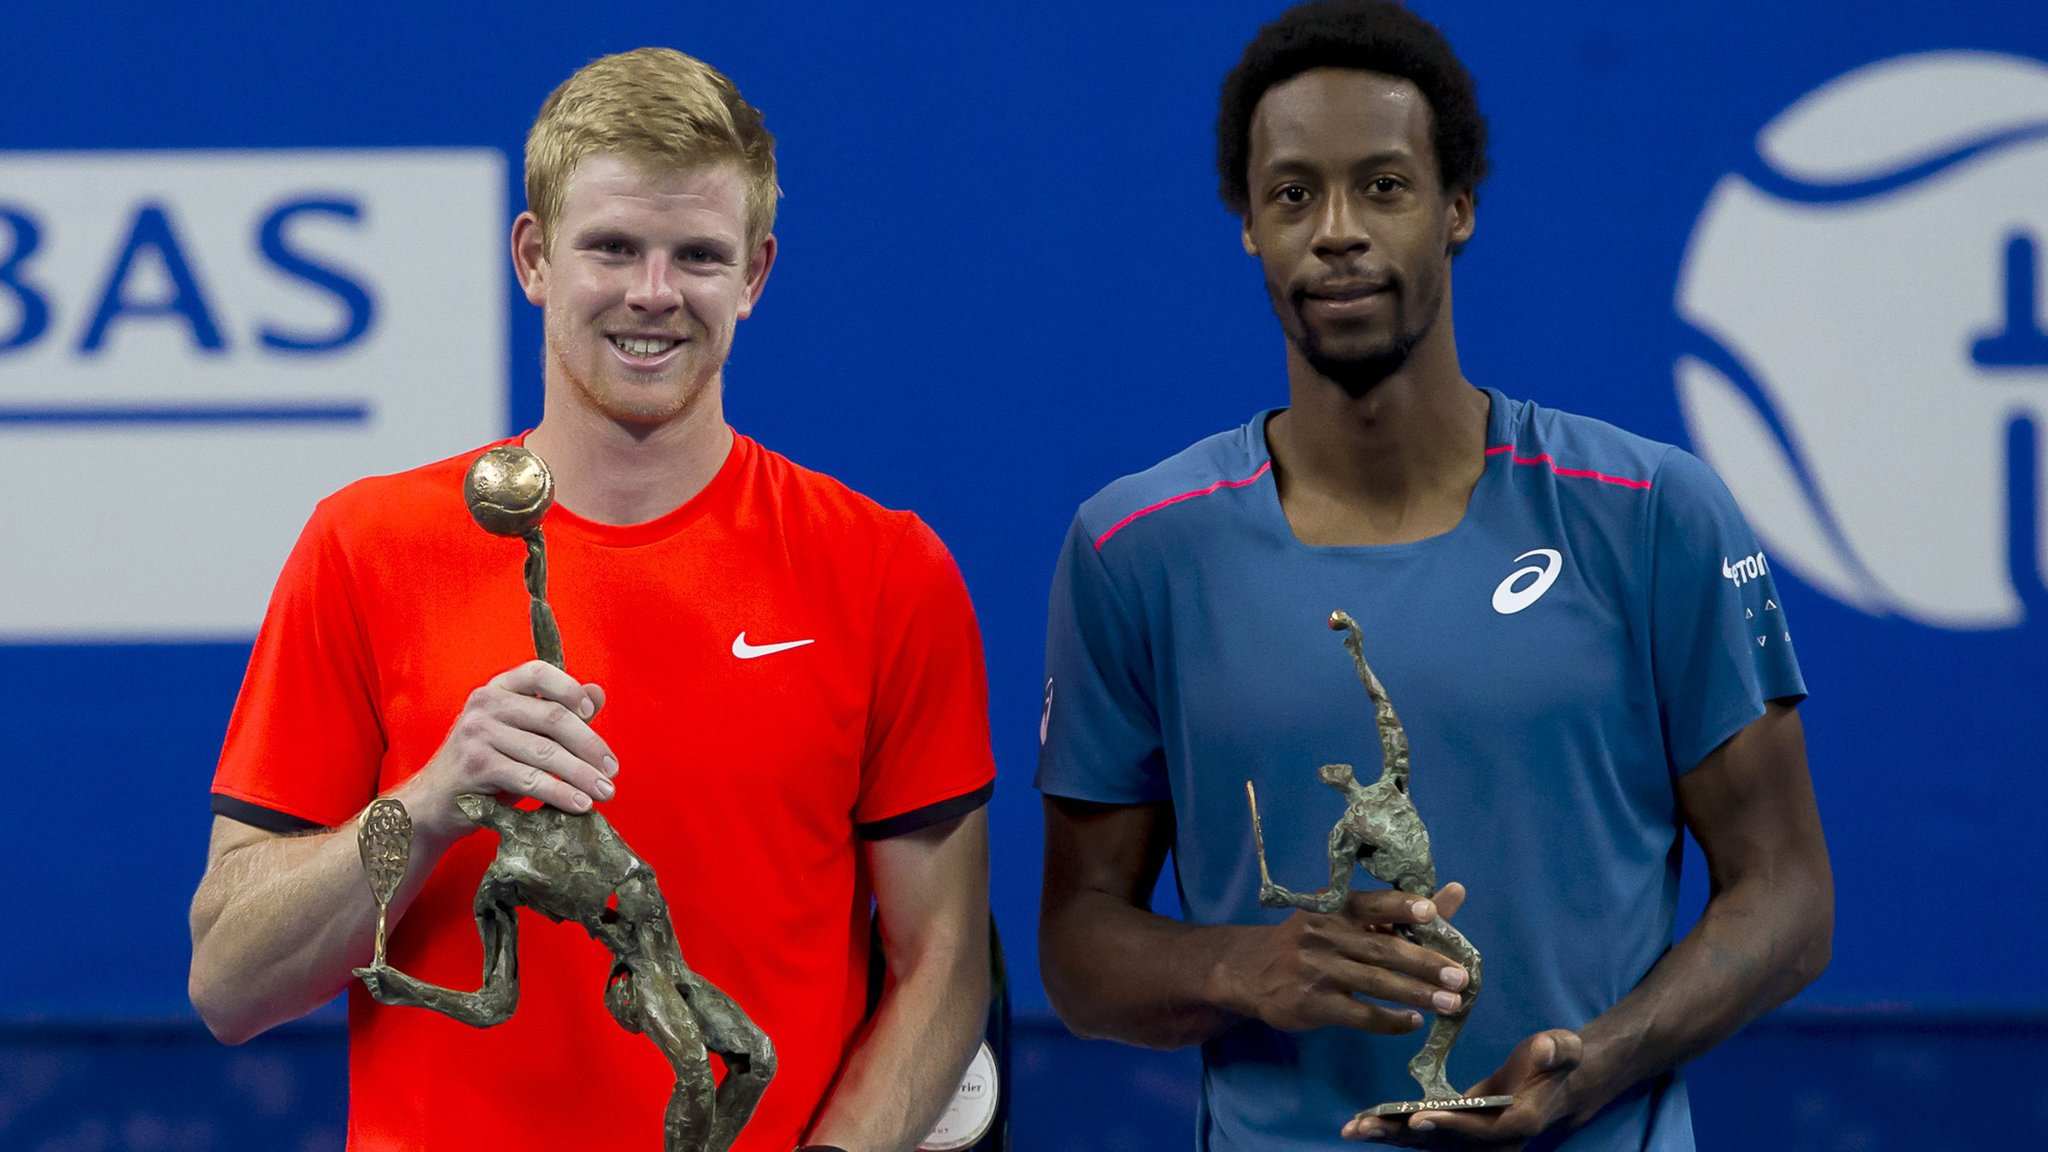 European Open: Britain's Kyle Edmund beats Gael Monfils to seal maiden title